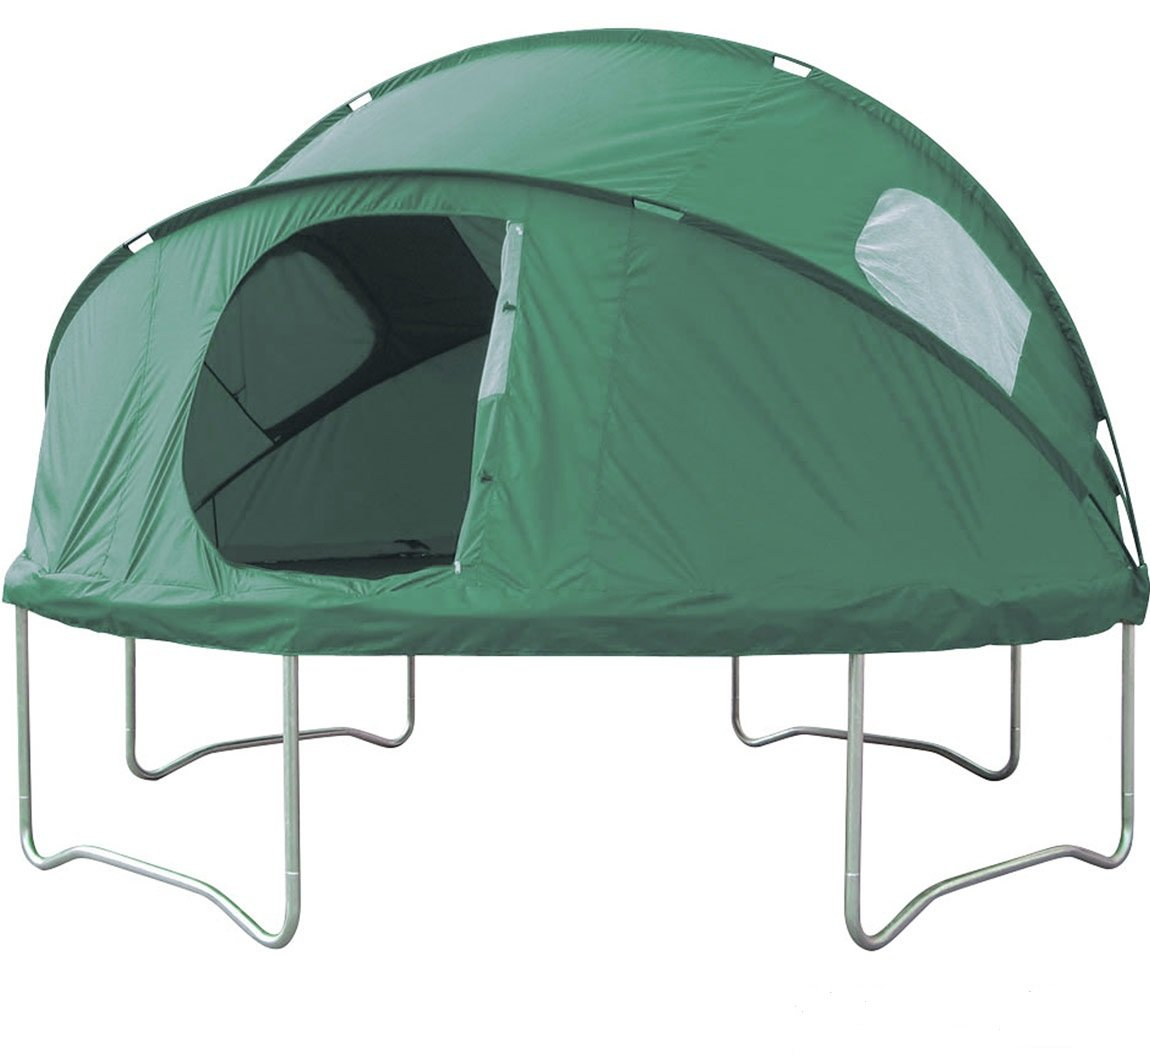 10 Foot Trampoline Tent. For Imaginative Play, Picnics, and Making a Den. Skyhigh